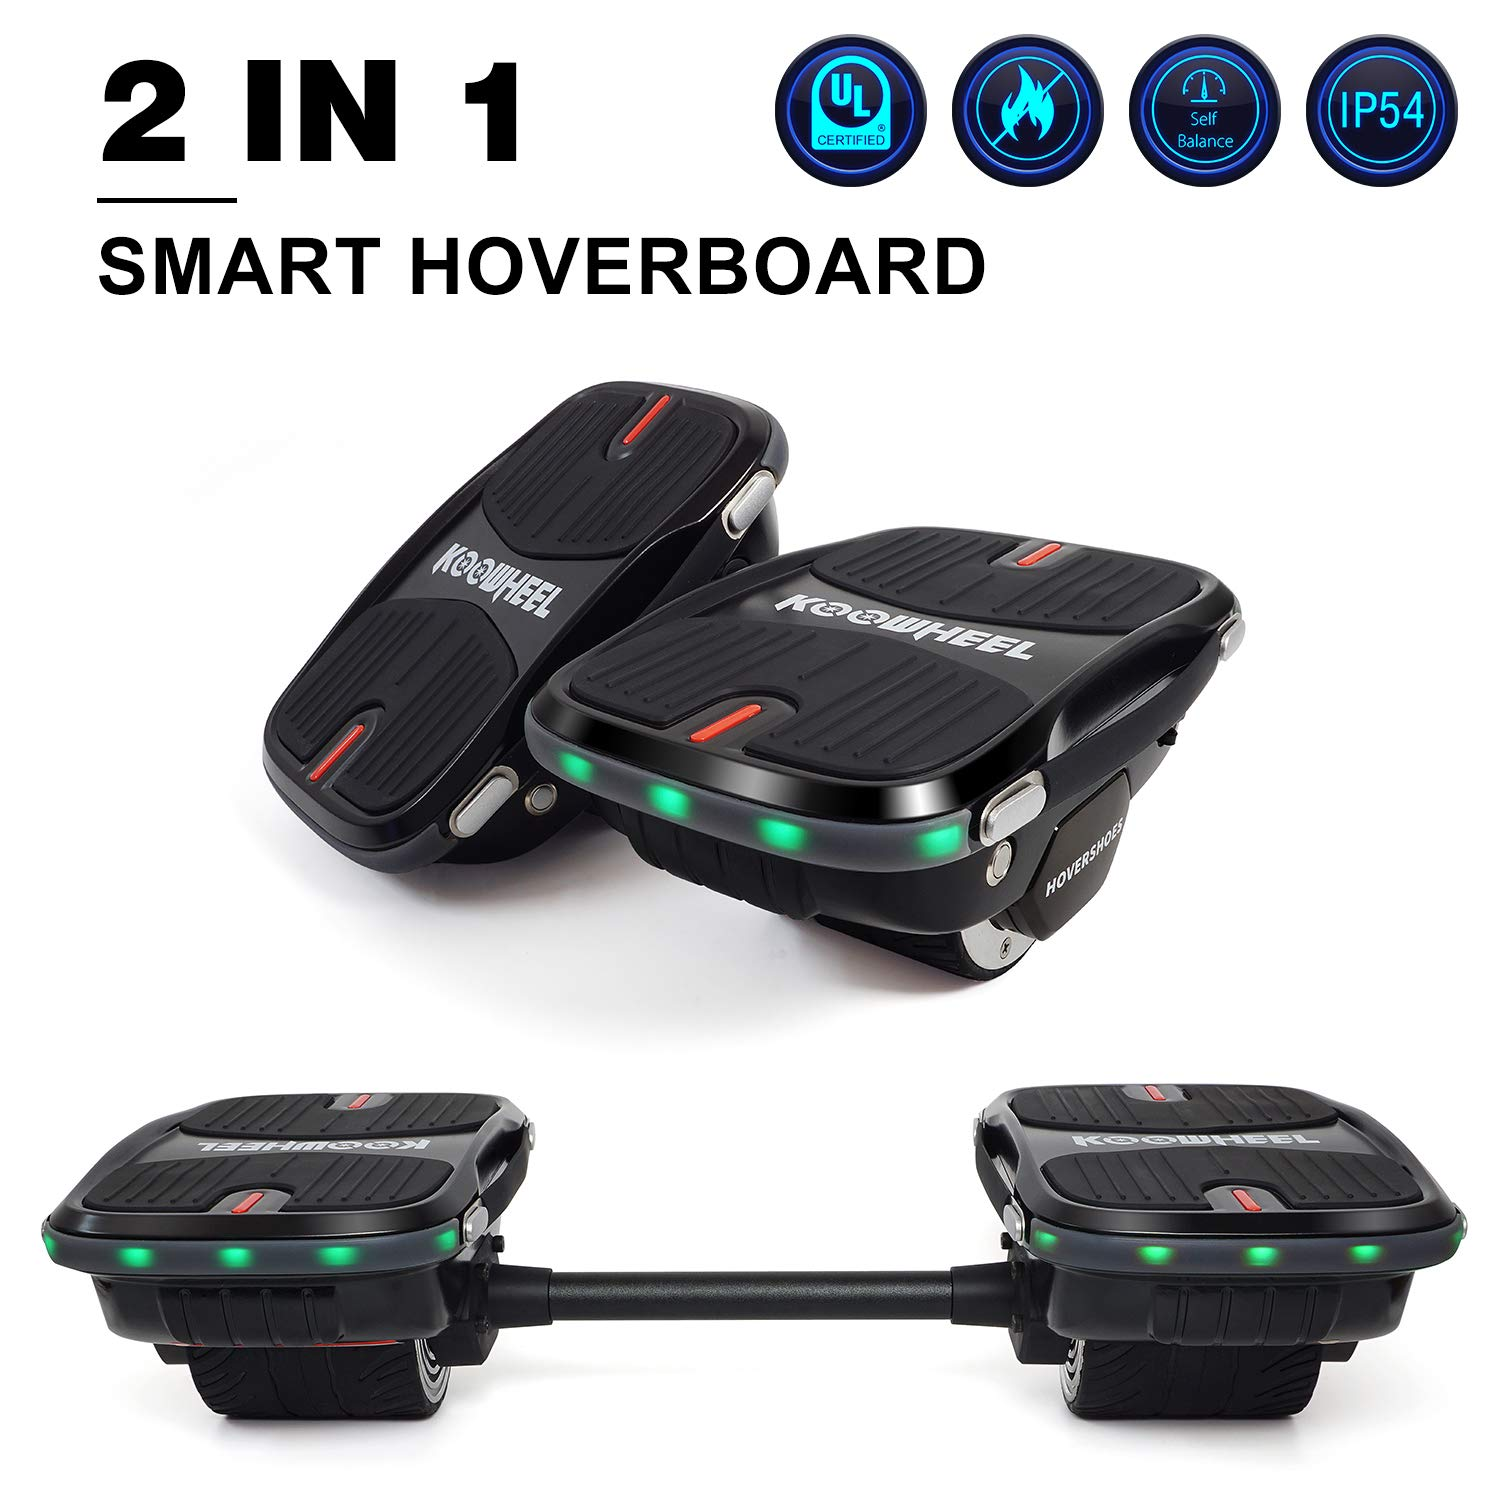 Convertible Hoverboard Hovershoes Electric Roller Skating Shoes/Self Balancing Hoverboard 2 in 1